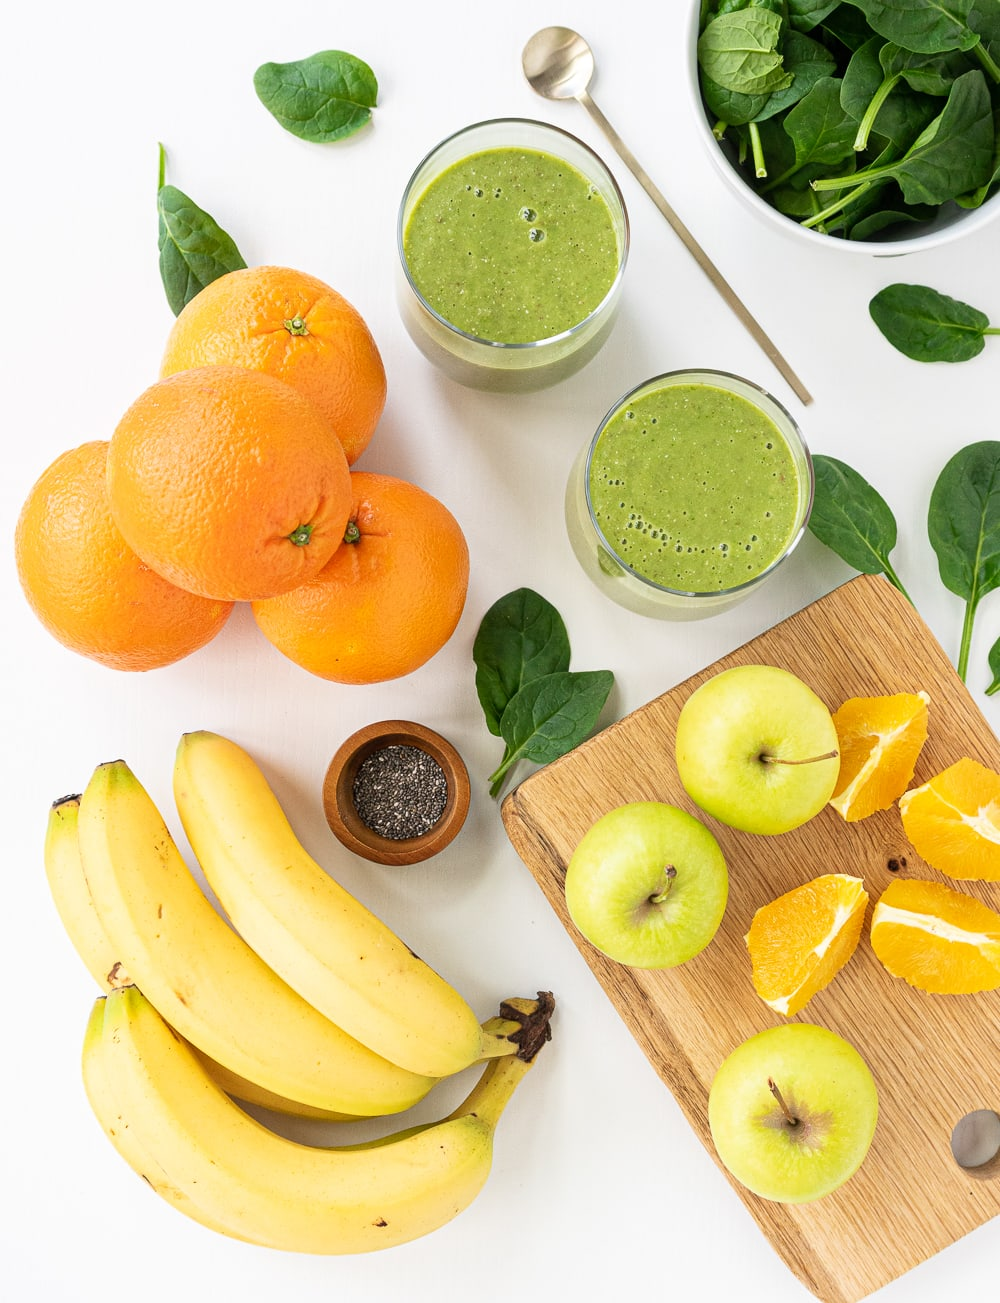 Green smoothies: 2 servings in glasses